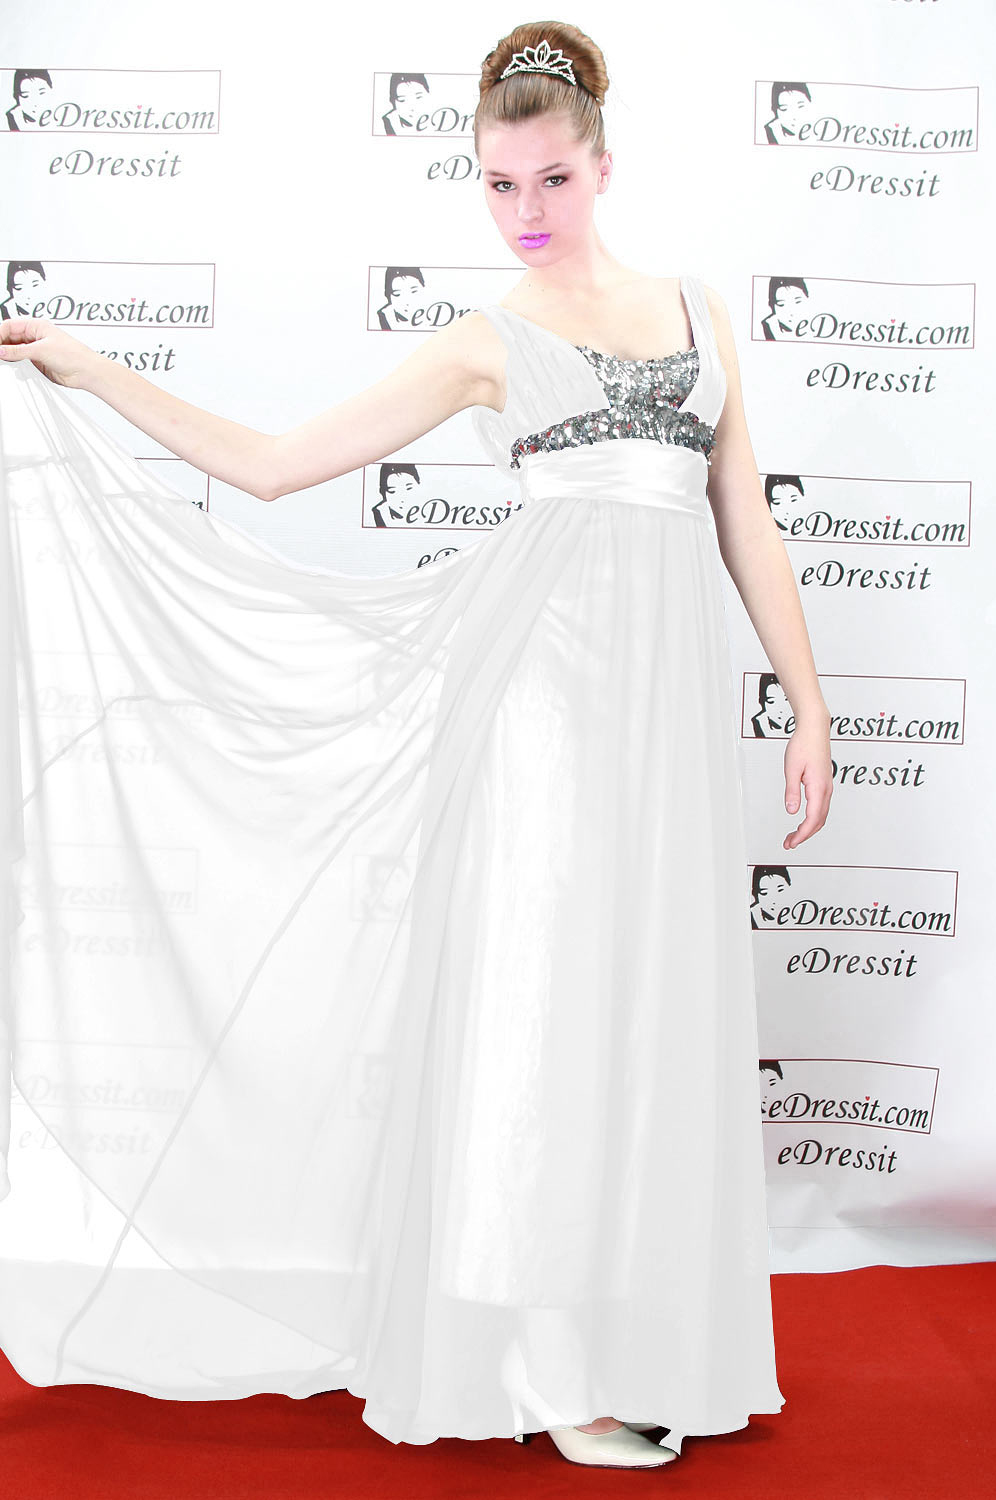 On Sale !! eDressit white prom dress evening dress (00080406f)